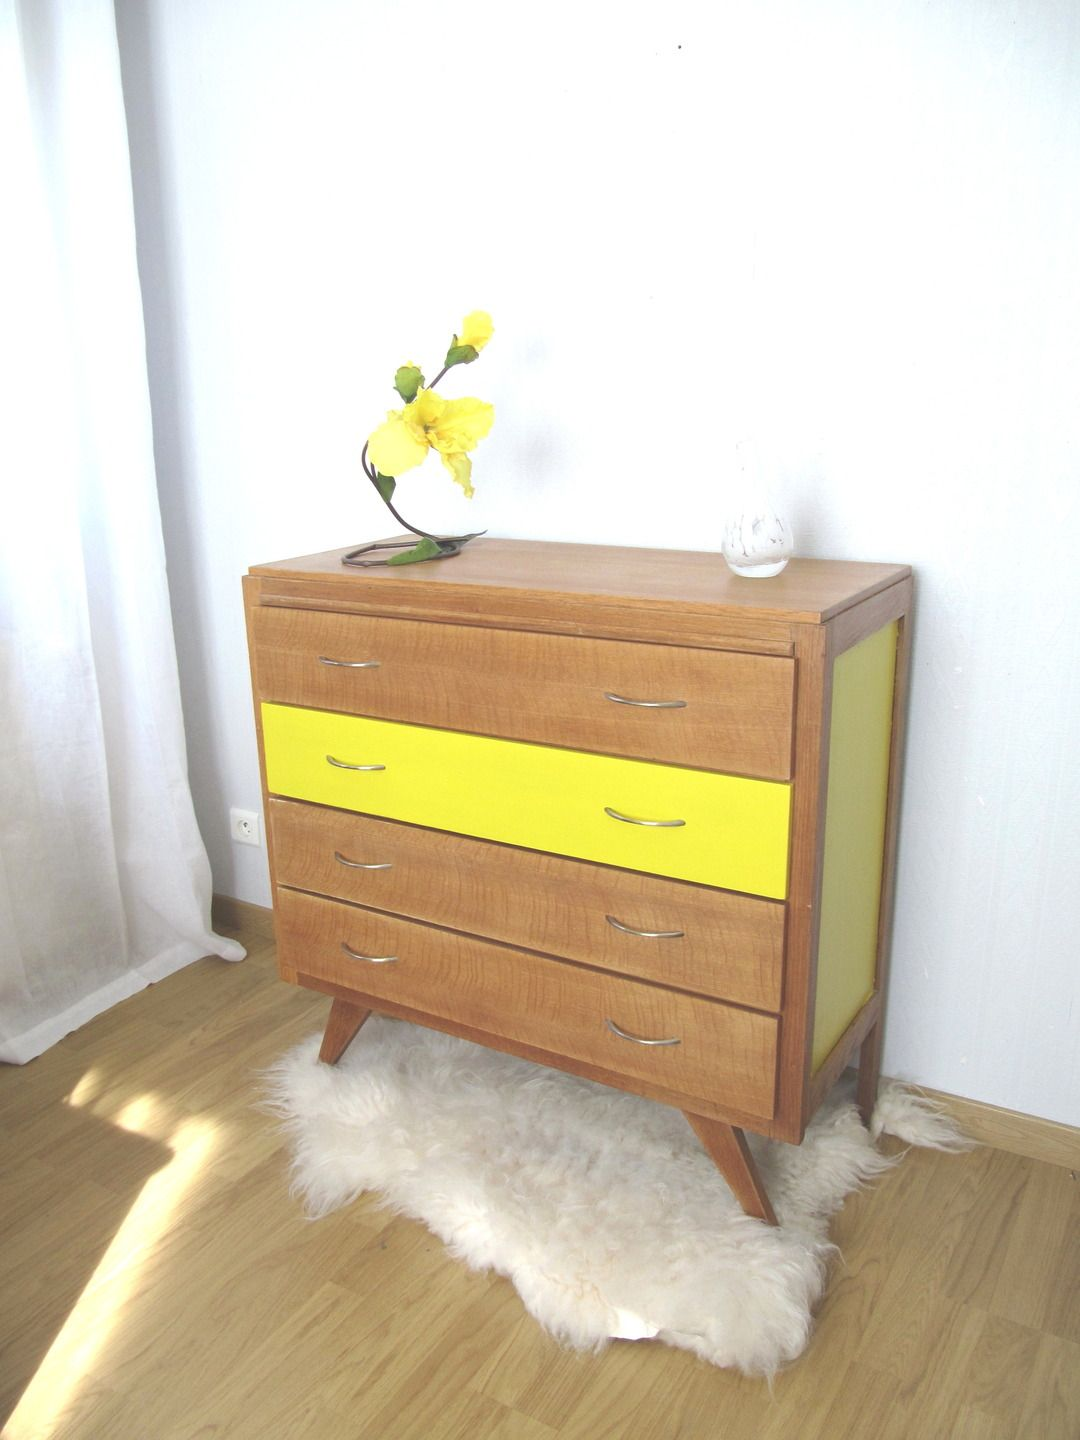 Commode ann es 60 ch ne et jaune pop meubles et for Deco meuble furniture richibucto